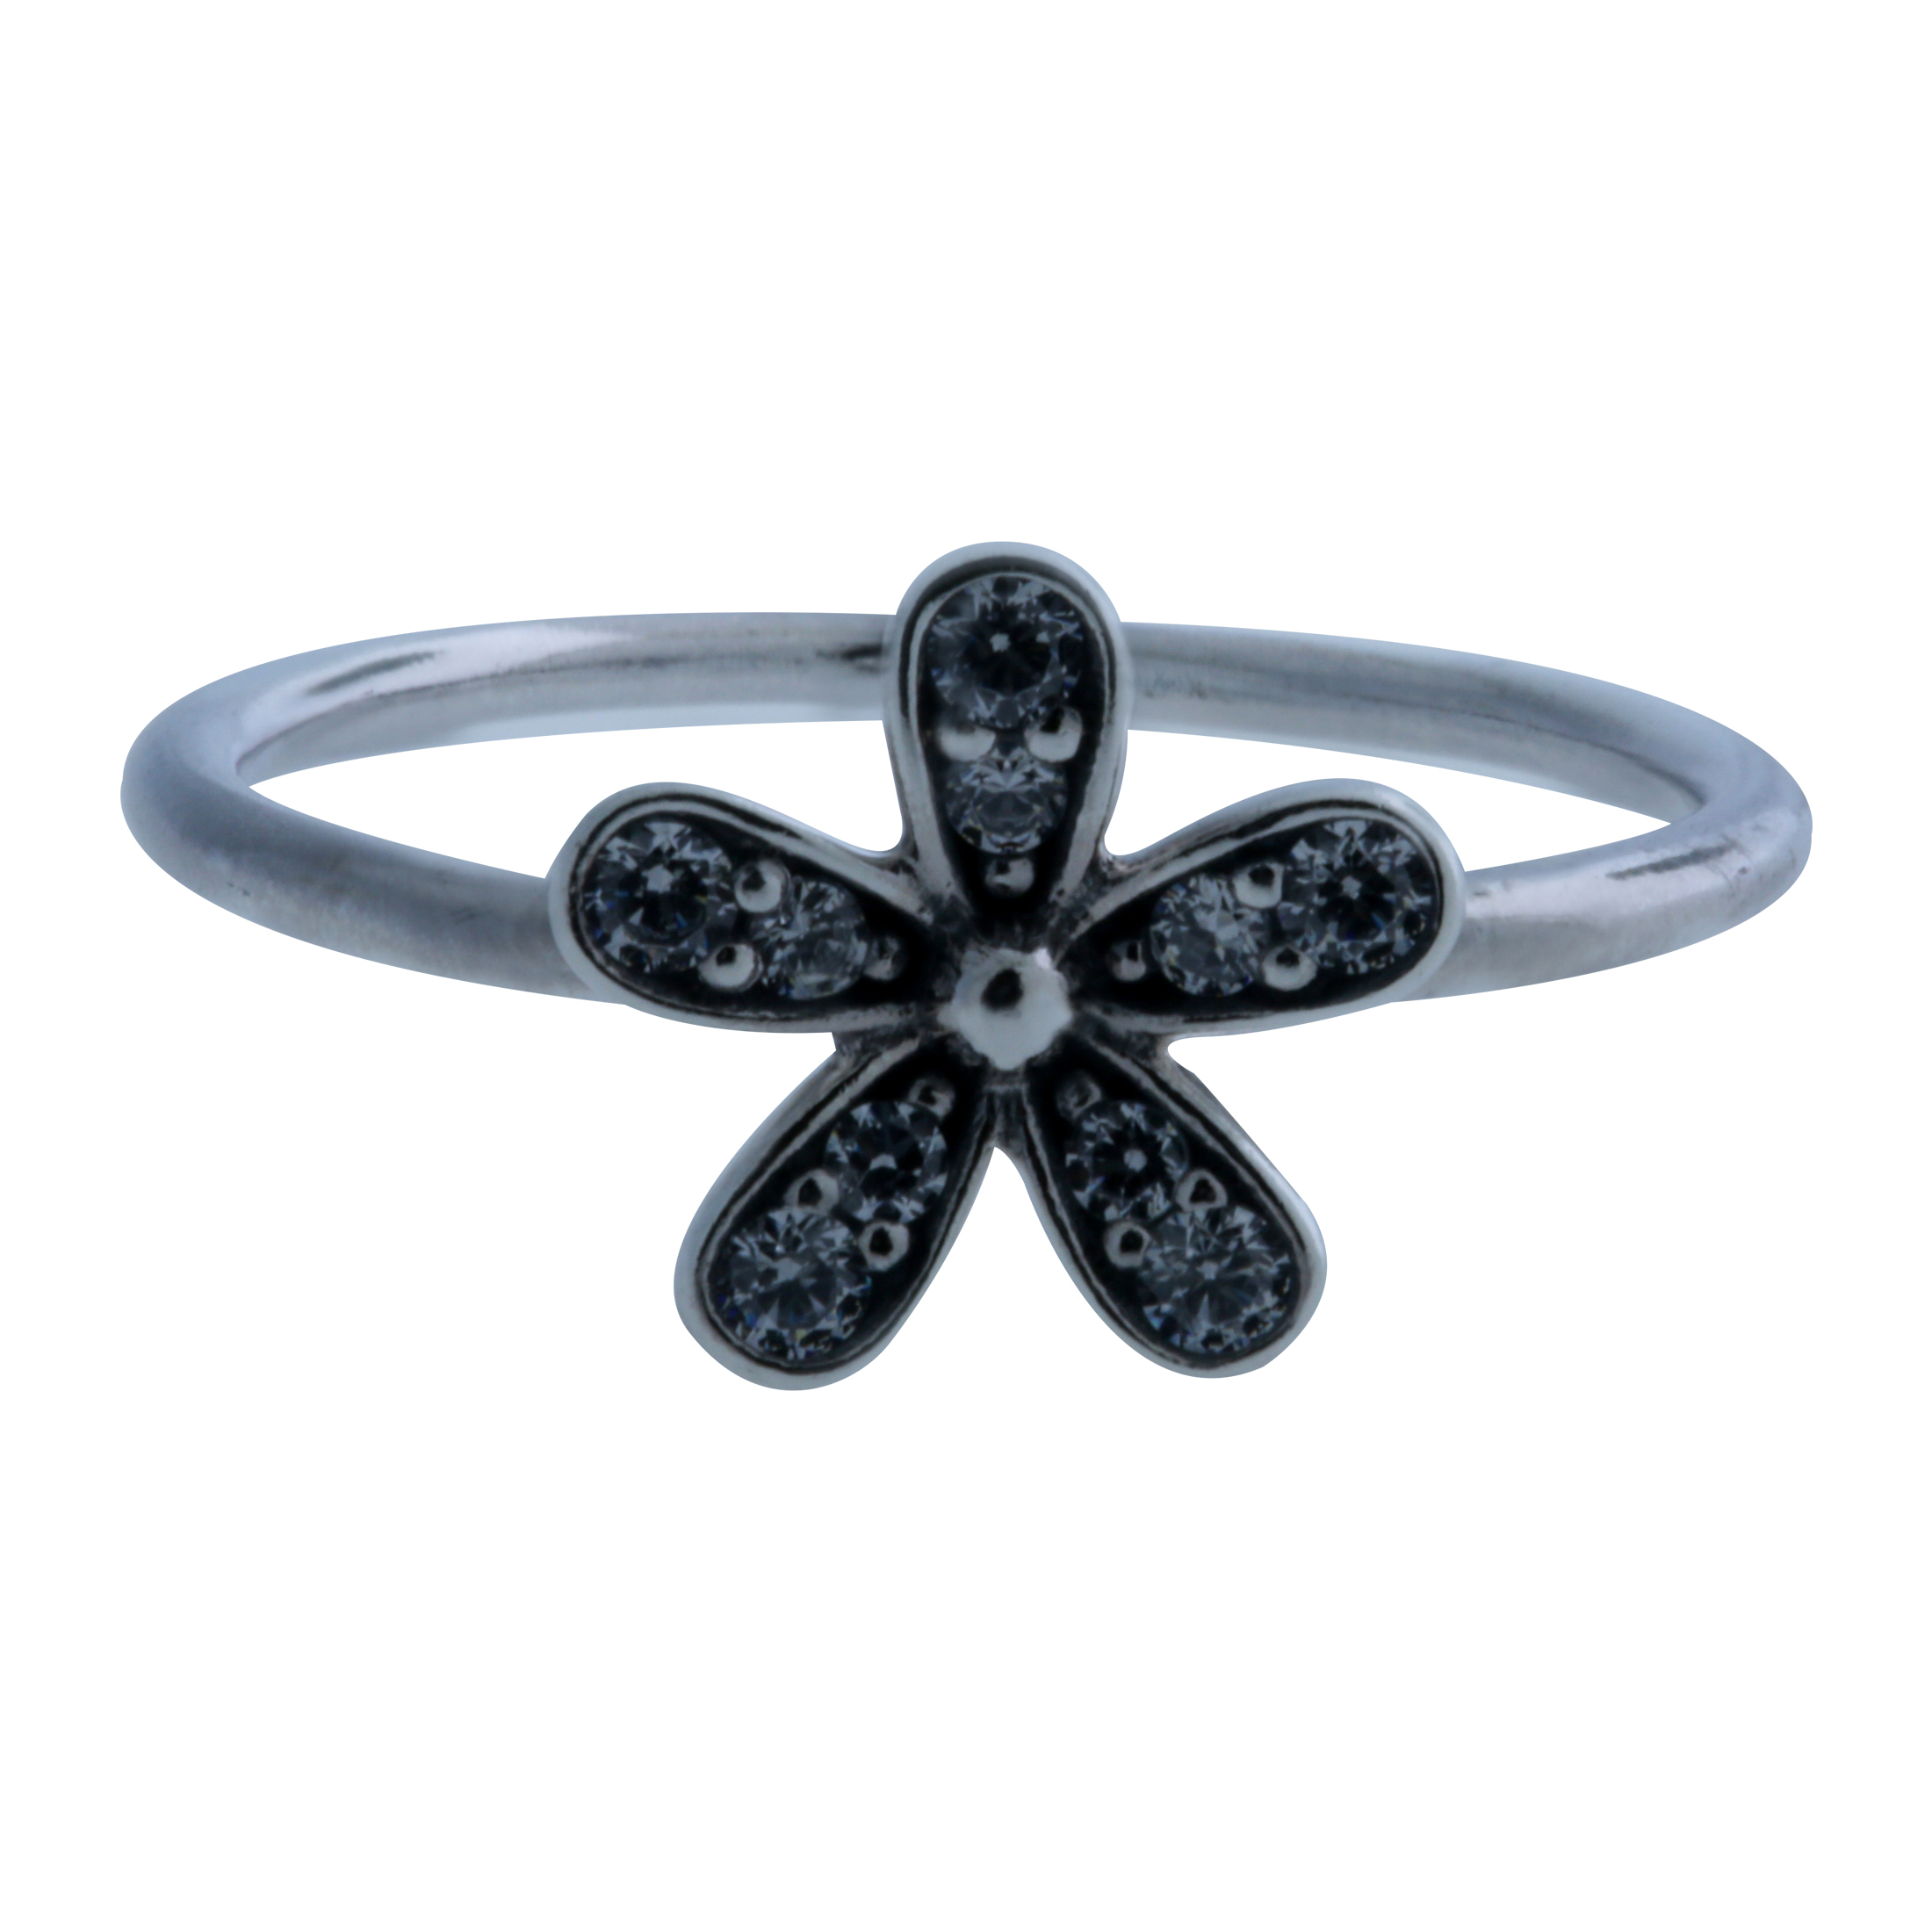 677ab641b Details about Authentic PANDORA Ring Dazzling Daisy with Clear CZ 190932CZ- 56, Size 7.5 : 56